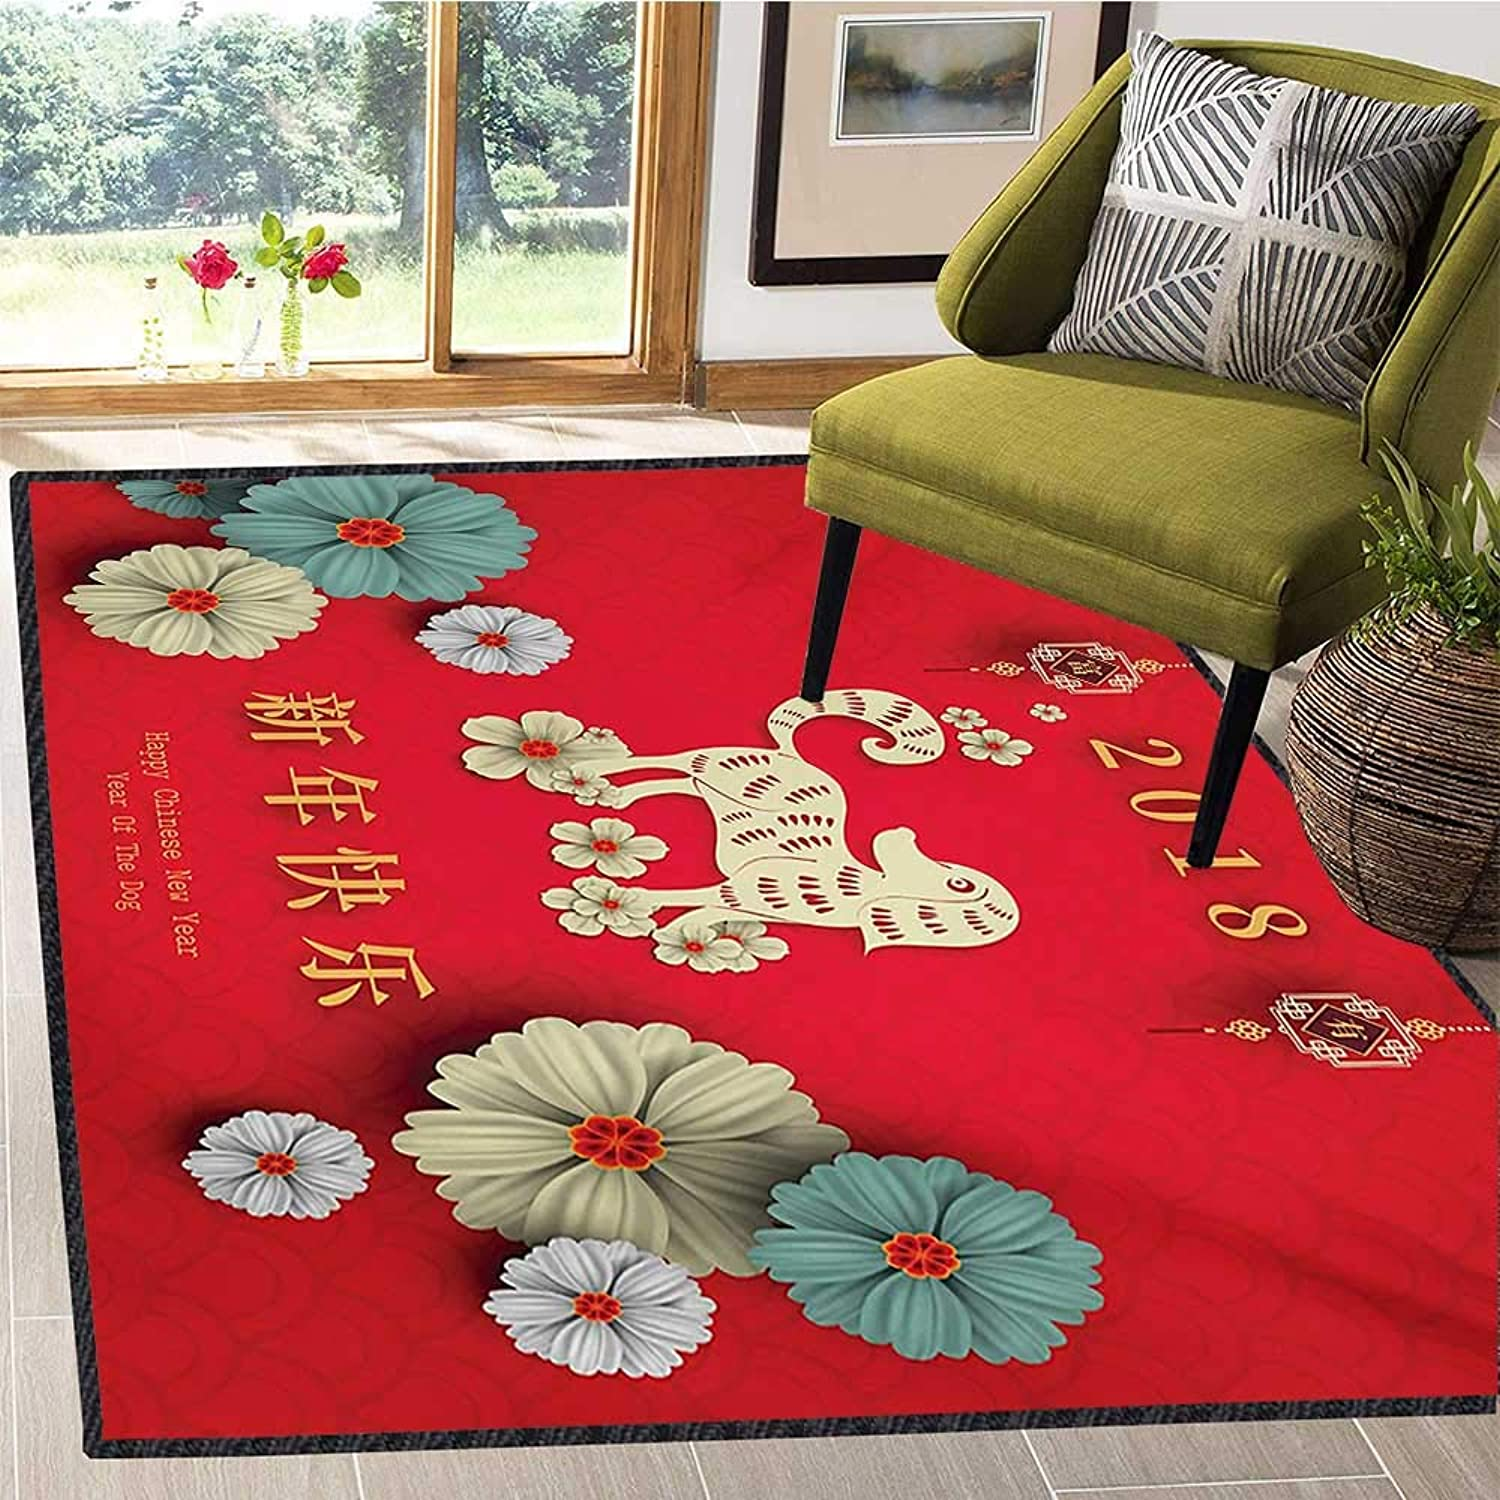 Year of The Dog, Floor Mat for Kids, Floral Arrangement with Far Eastern Lunar Calendar Pattern 2018 New Year, Door Mats for Inside Non Slip Backing 5x8 Ft Multicolor